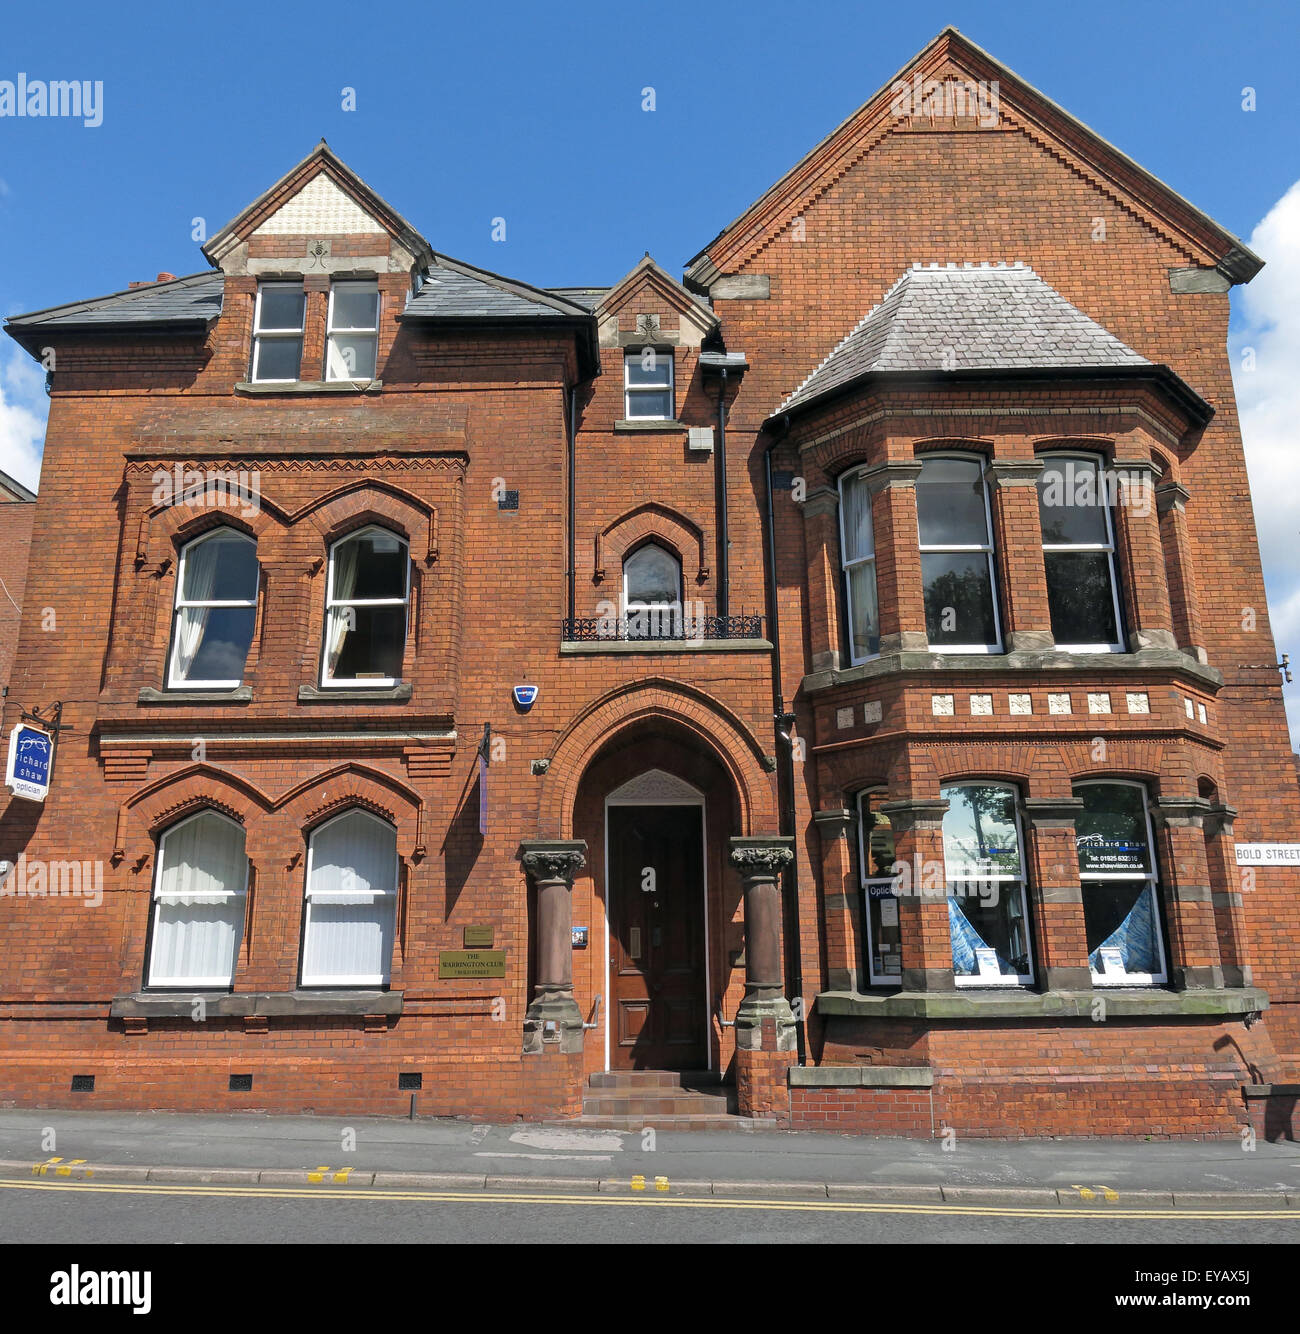 Victorian,tradition,brick,building,architecture,1876,business,community,town,centre,remarkable,buildings,Peter,Stubbs,Stubs,Warringtonian,wires,traditions,traditional,gentlemens,club,gentlemans,John,Earnest Crosfield of Joseph Crosfield & Sons Ltd,Sir Gilbert Greenall MP,Lieut Col. Greenall,GoTonySmith,Captain Grenall of the Greenall Whitley Brewery. Paul,Harry,and,George,Rylands,founders,of,the,world,famous,Rylands,Brothers,Ltd,Wire,&,Nails,manufacturers,–,hence,the,obvious,connection,with,the,local,Rugby,League,team,known,as,'The,Wires'.,Peter,Stubbs,founded,the,firm,of,Stubs,Ltd,again,with,an,international,reputation,for,the,manufacture,of,'Files',Buy Pictures of,Buy Images Of